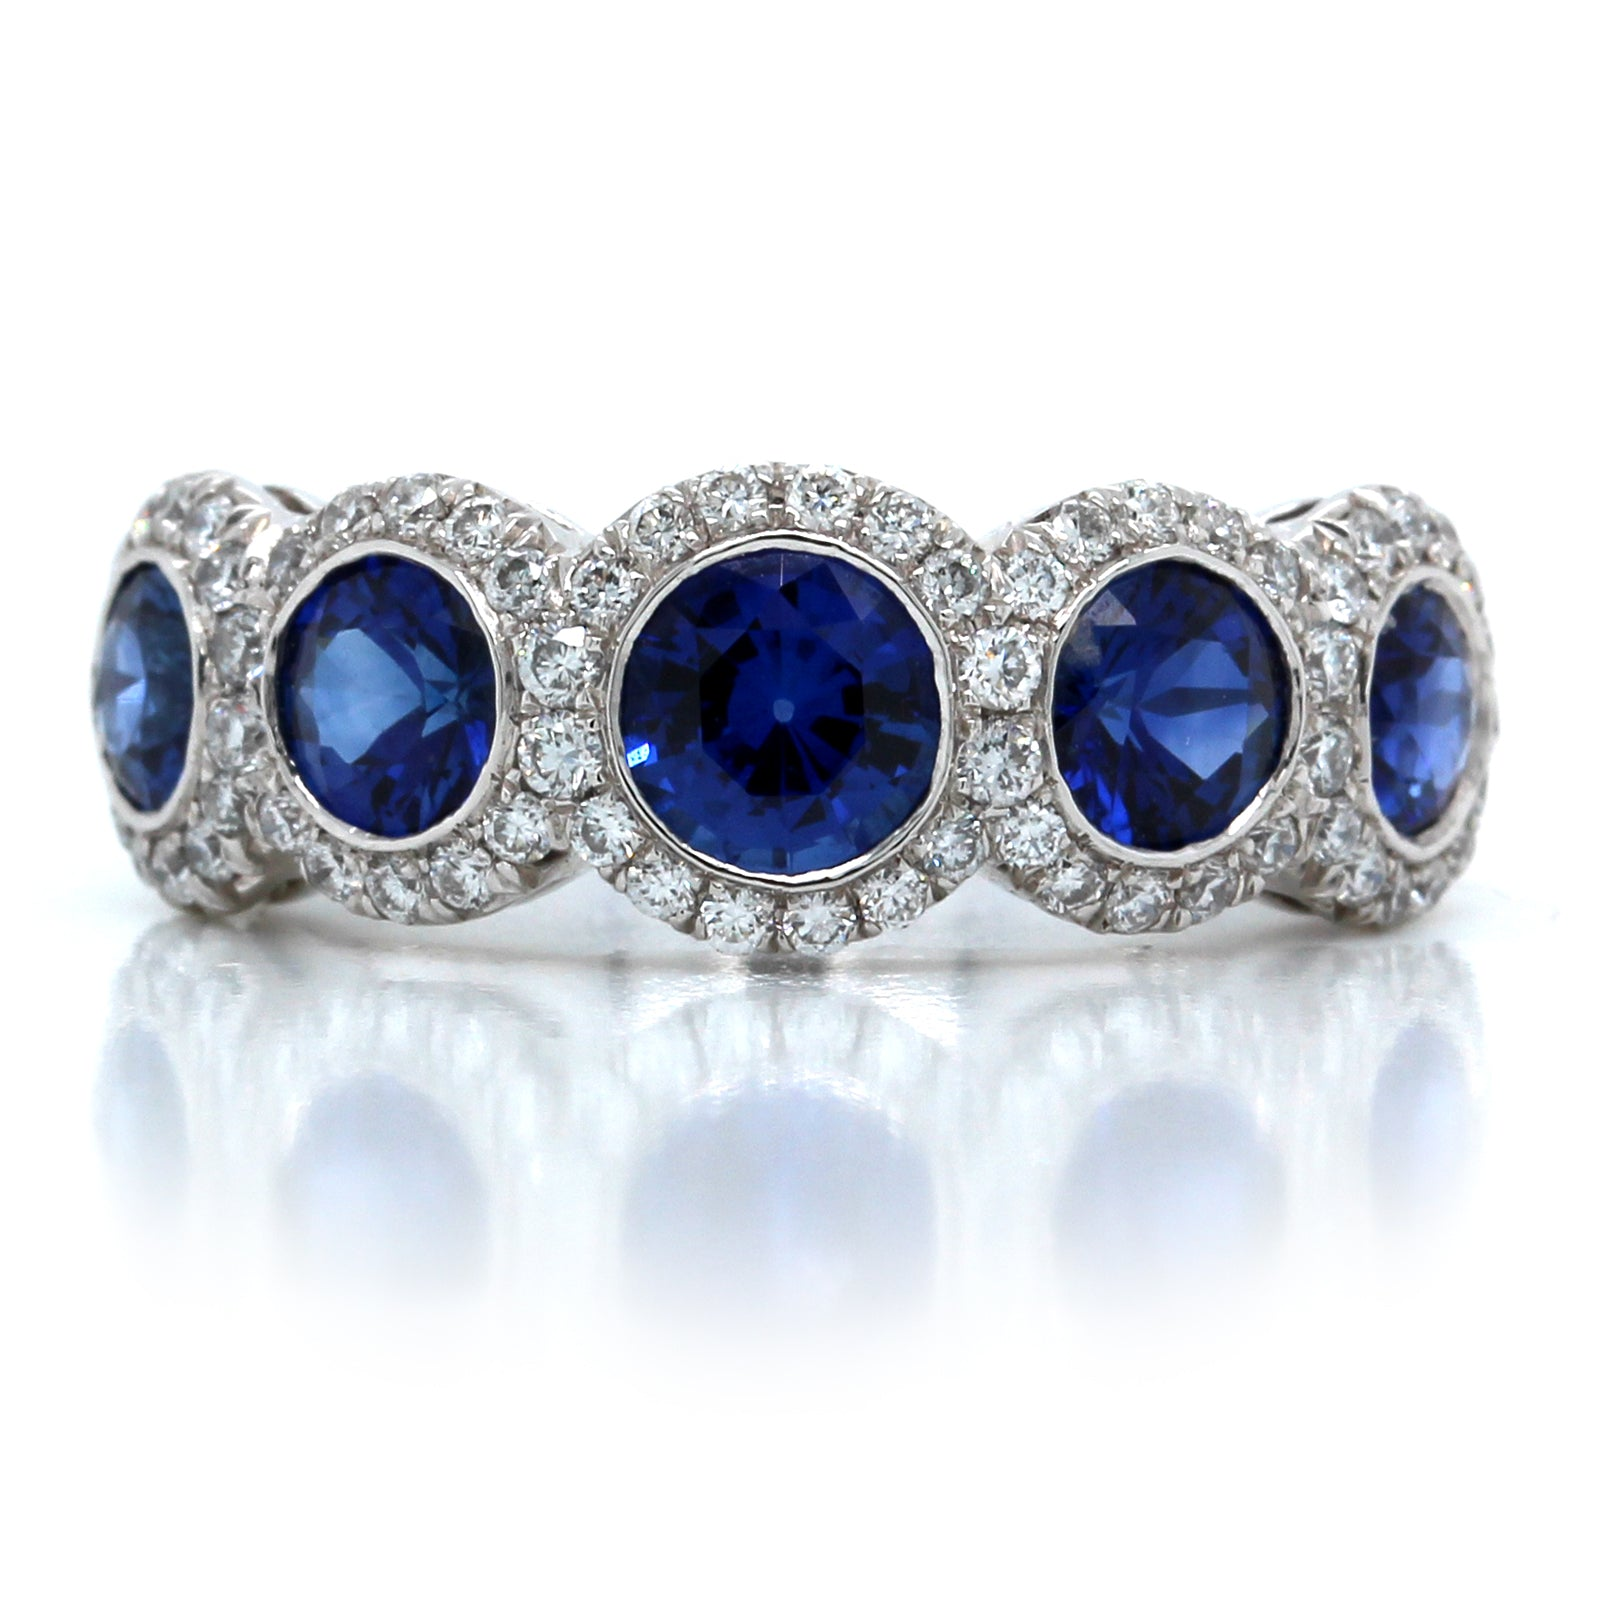 Platinum 5 Stone Sapphire and Diamond Band